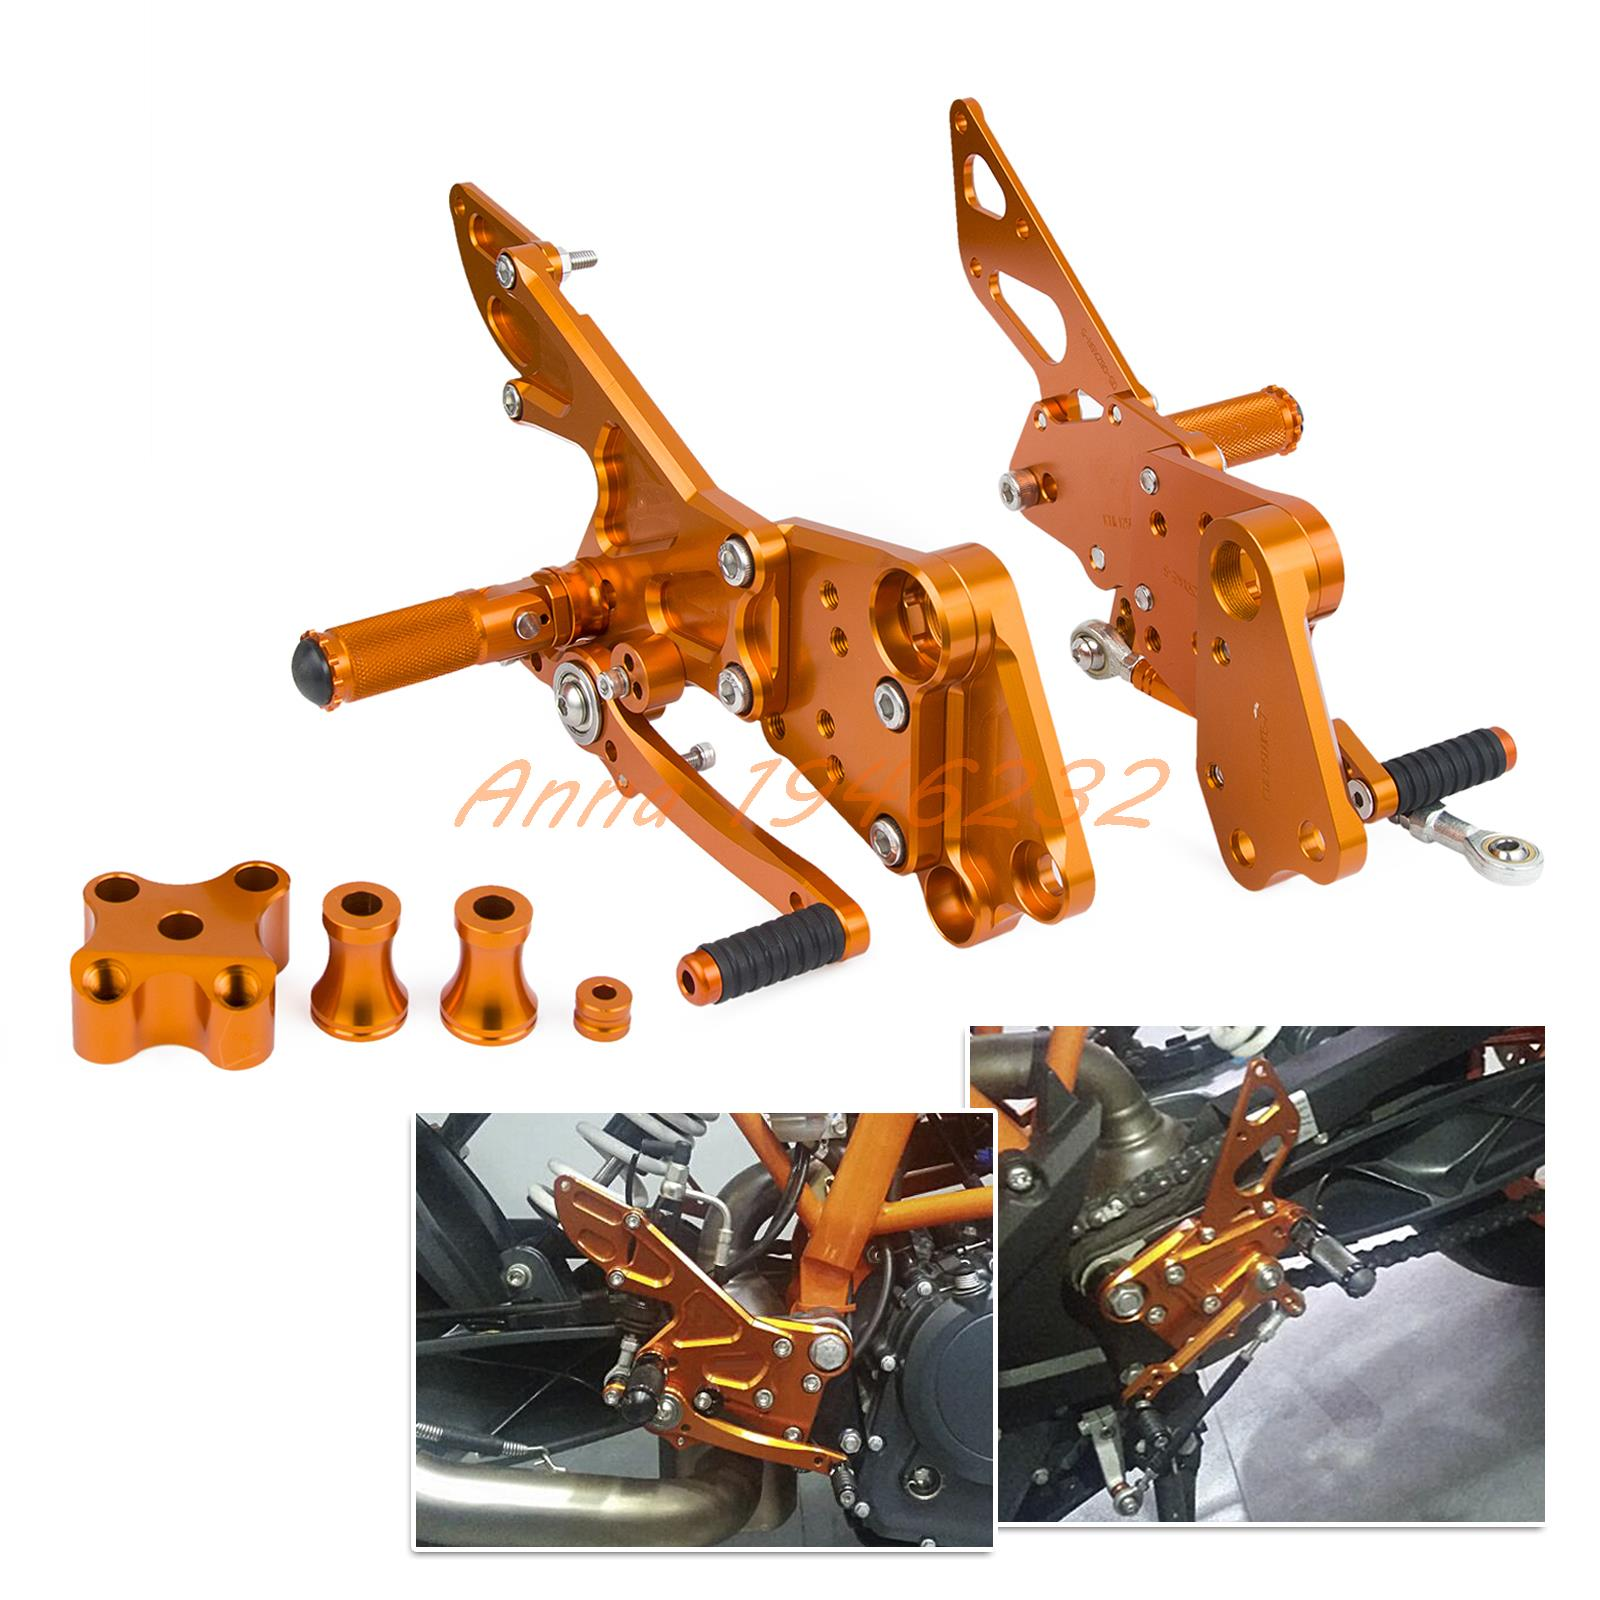 CNC Rear Passenger Footrest Bracket Sets For KTM 125/200/390 Duke 2011 2012 2013 2014 2015 2016 new wave rear brake disc rotor for ktm duke 125 2011 2012 2013 2014 duke200 2012 2014 duke390 13 14